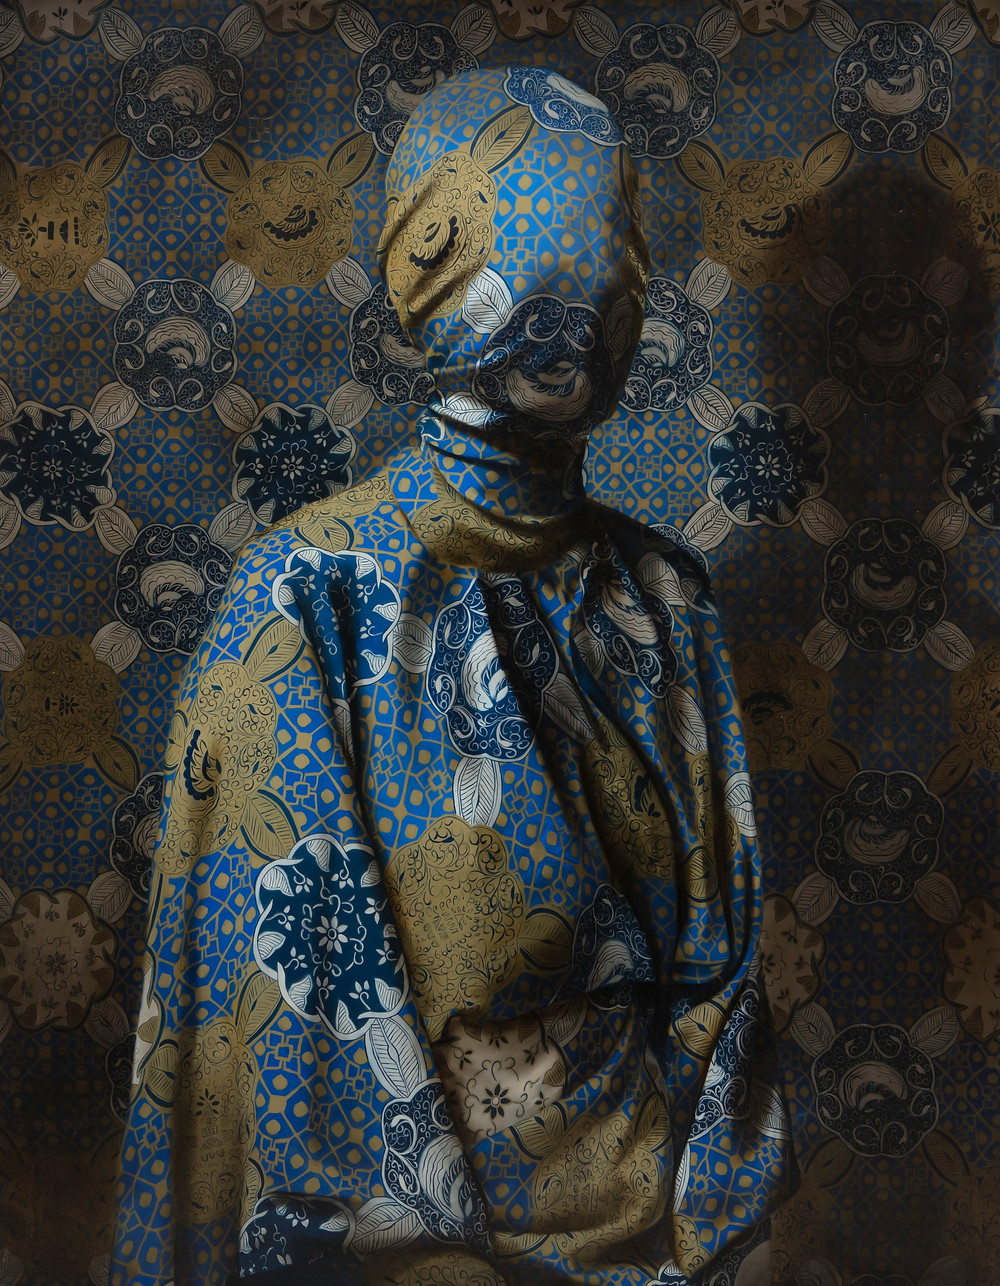 Now you see me (Blue and Gold Kimono) - Markus Åkesson - oil on canvas, 2019